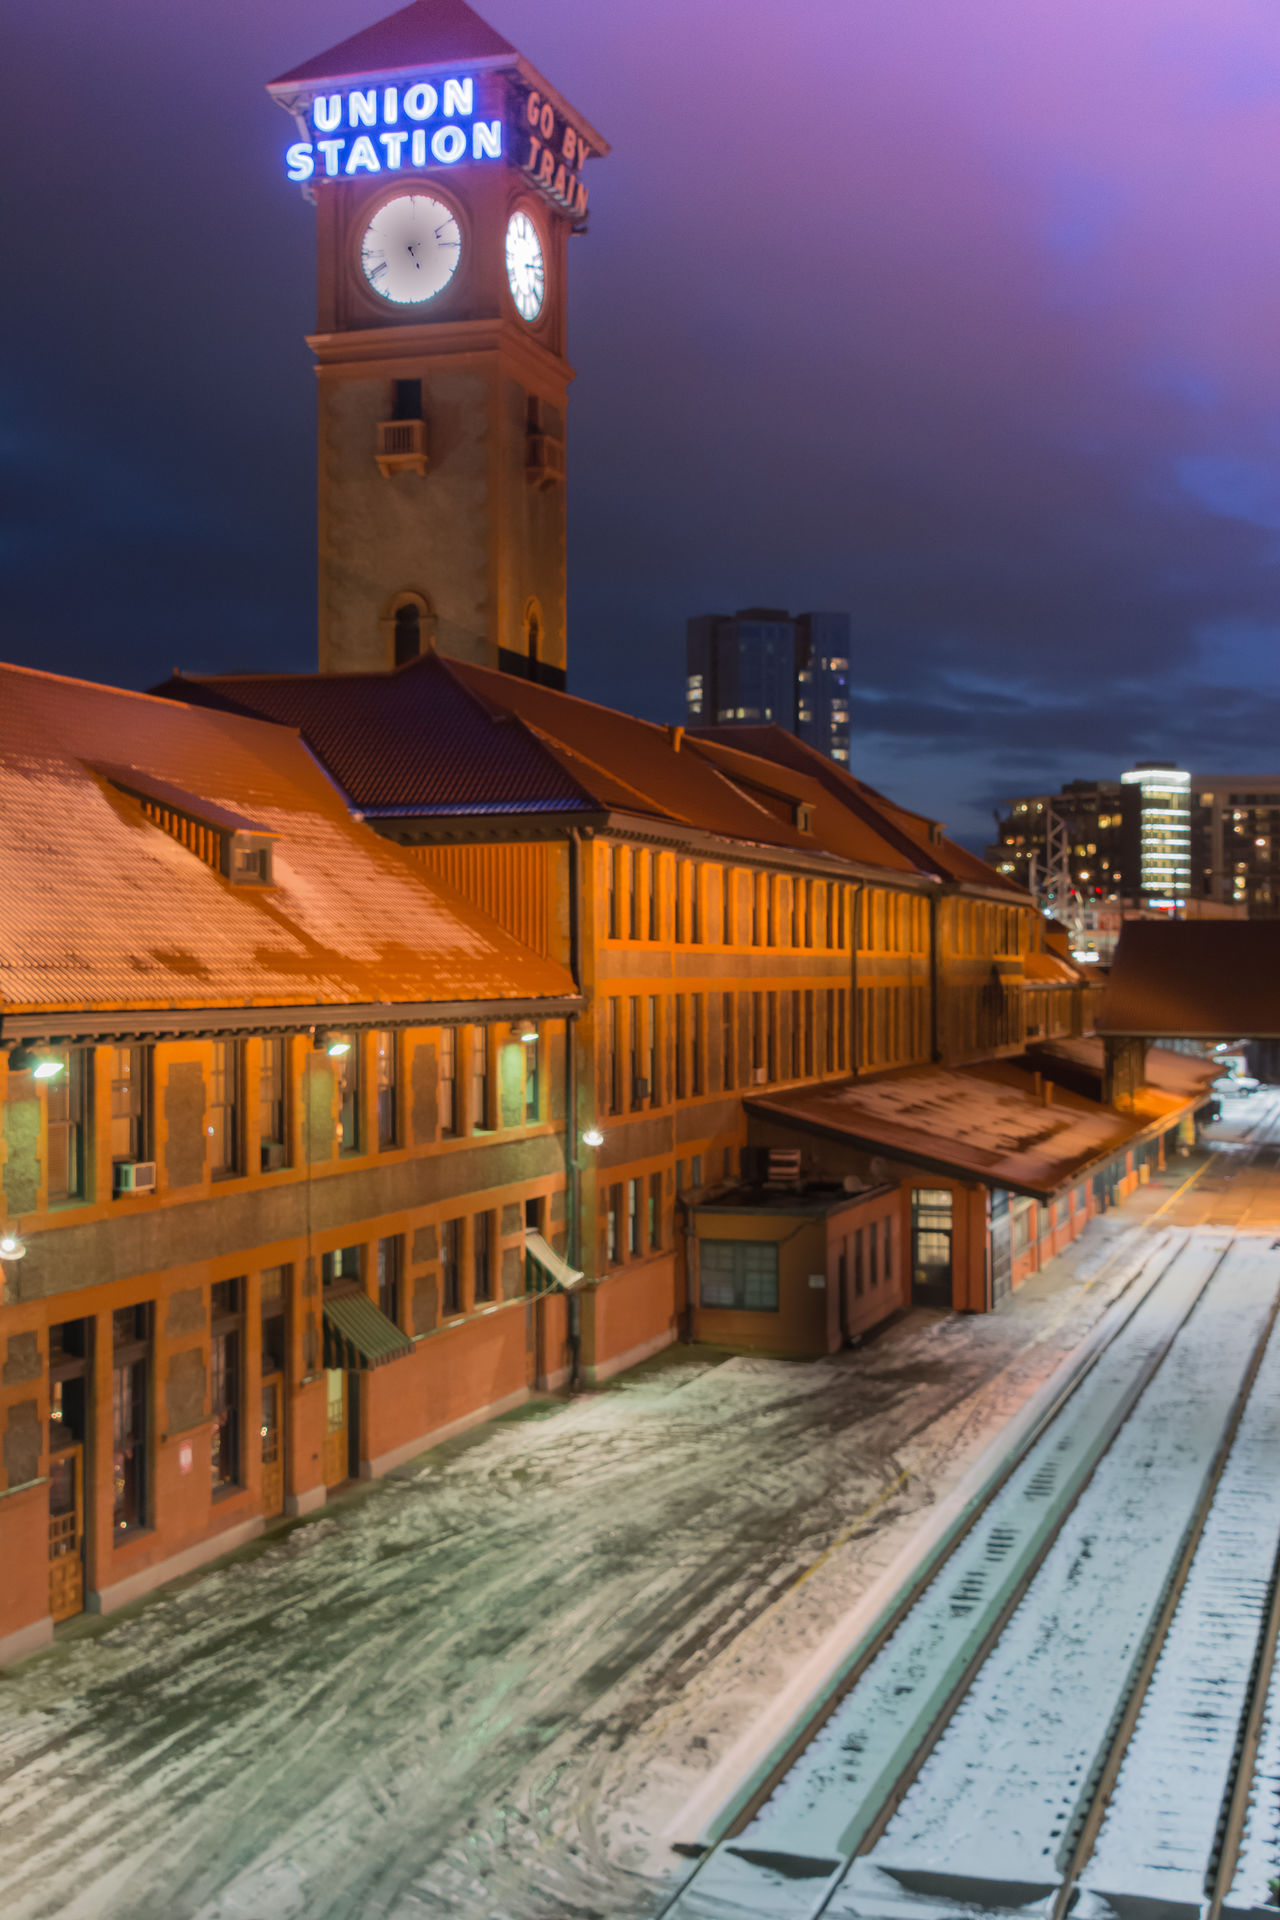 Architecture Building Exterior Built Structure City Cold Temperature Illuminated Night Night Photography No People Outdoors Rail Transportation Railroad Track Roof Sky Snow Train Station Travel Destinations Winter